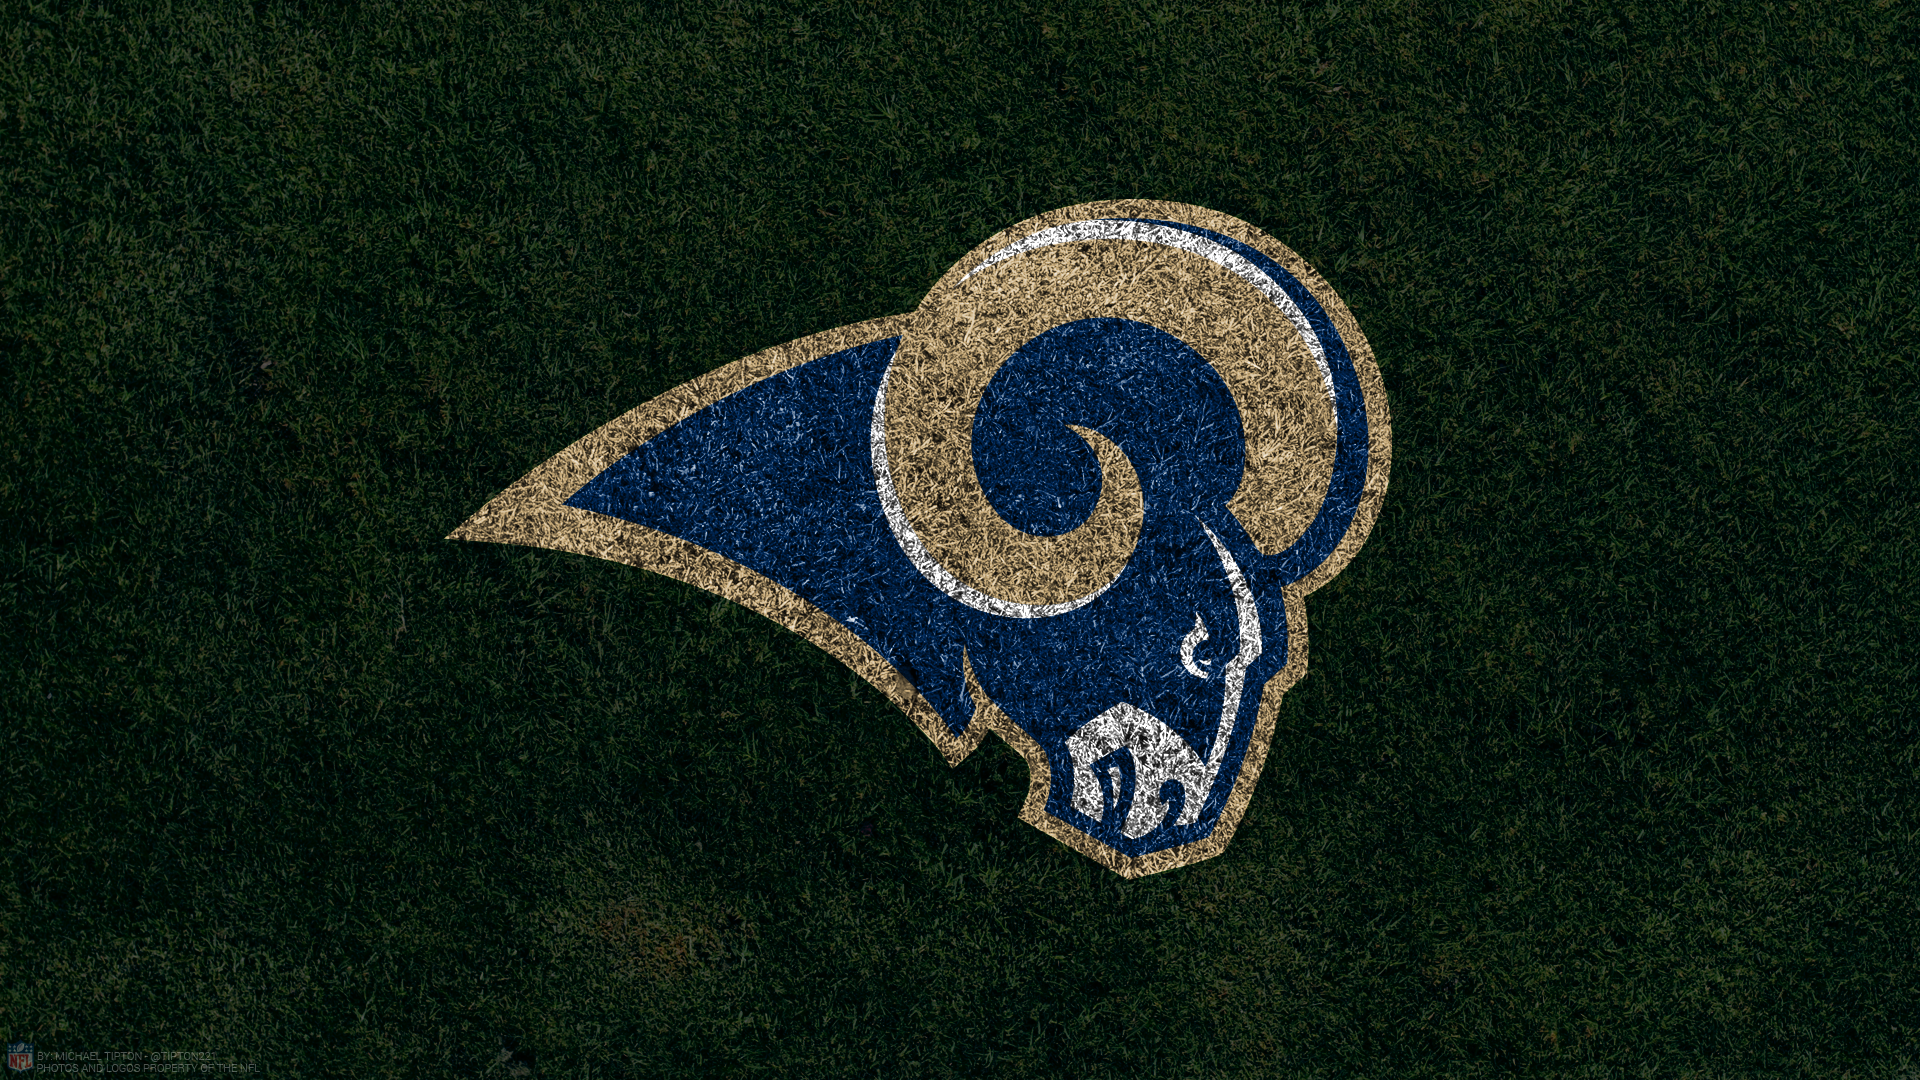 Los Angeles Rams HD Wallpaper | Background Image | 1920x1080 | ID:981934 - Wallpaper Abyss